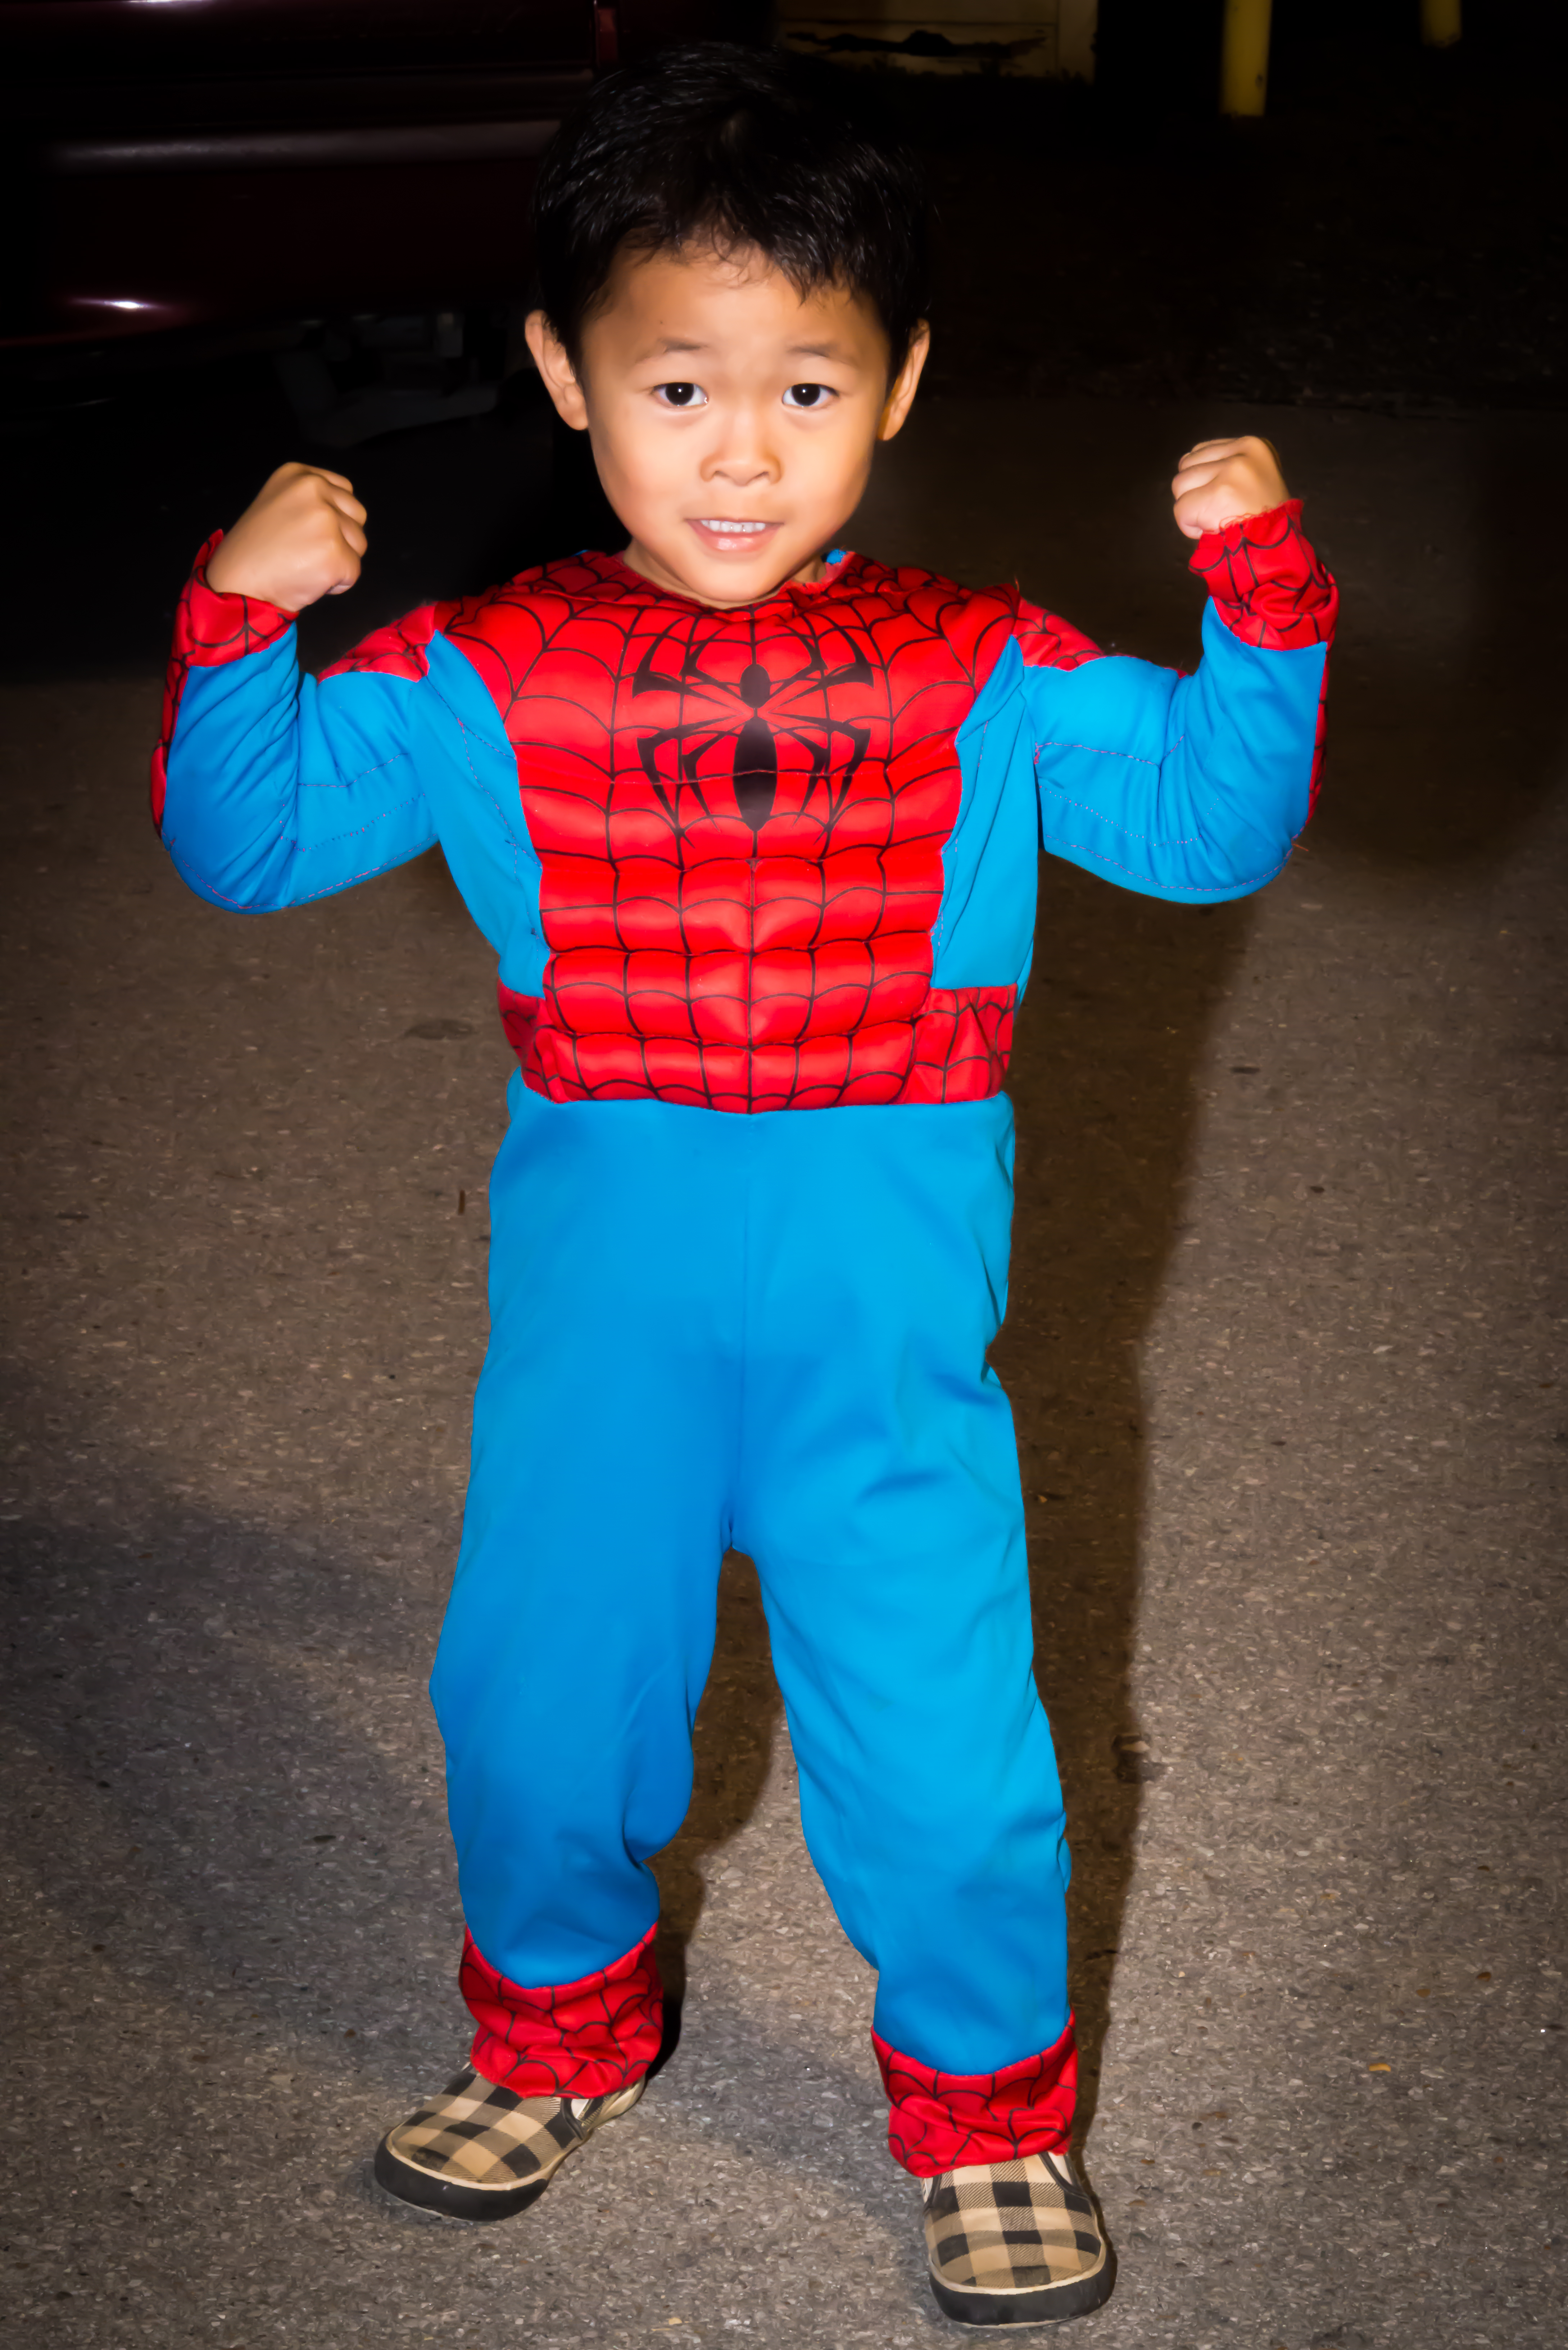 Trunk or treat 2015 photo